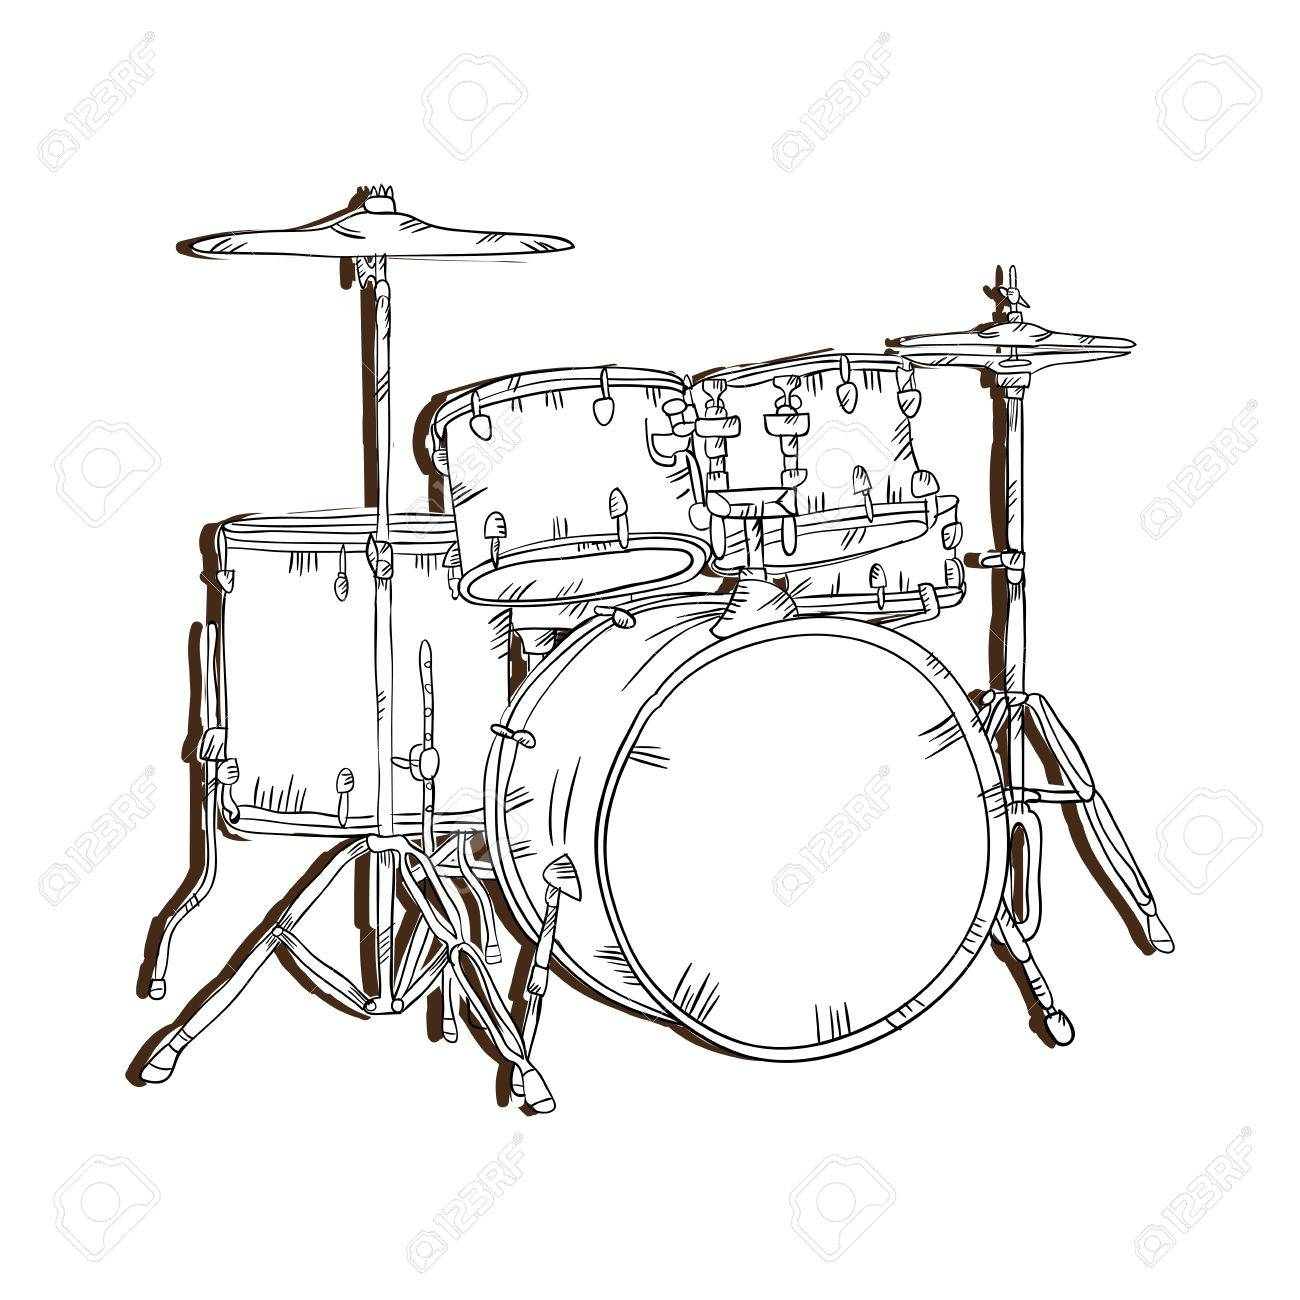 hight resolution of drum set musical instrument traditional music element vector illustration stock vector 62576473